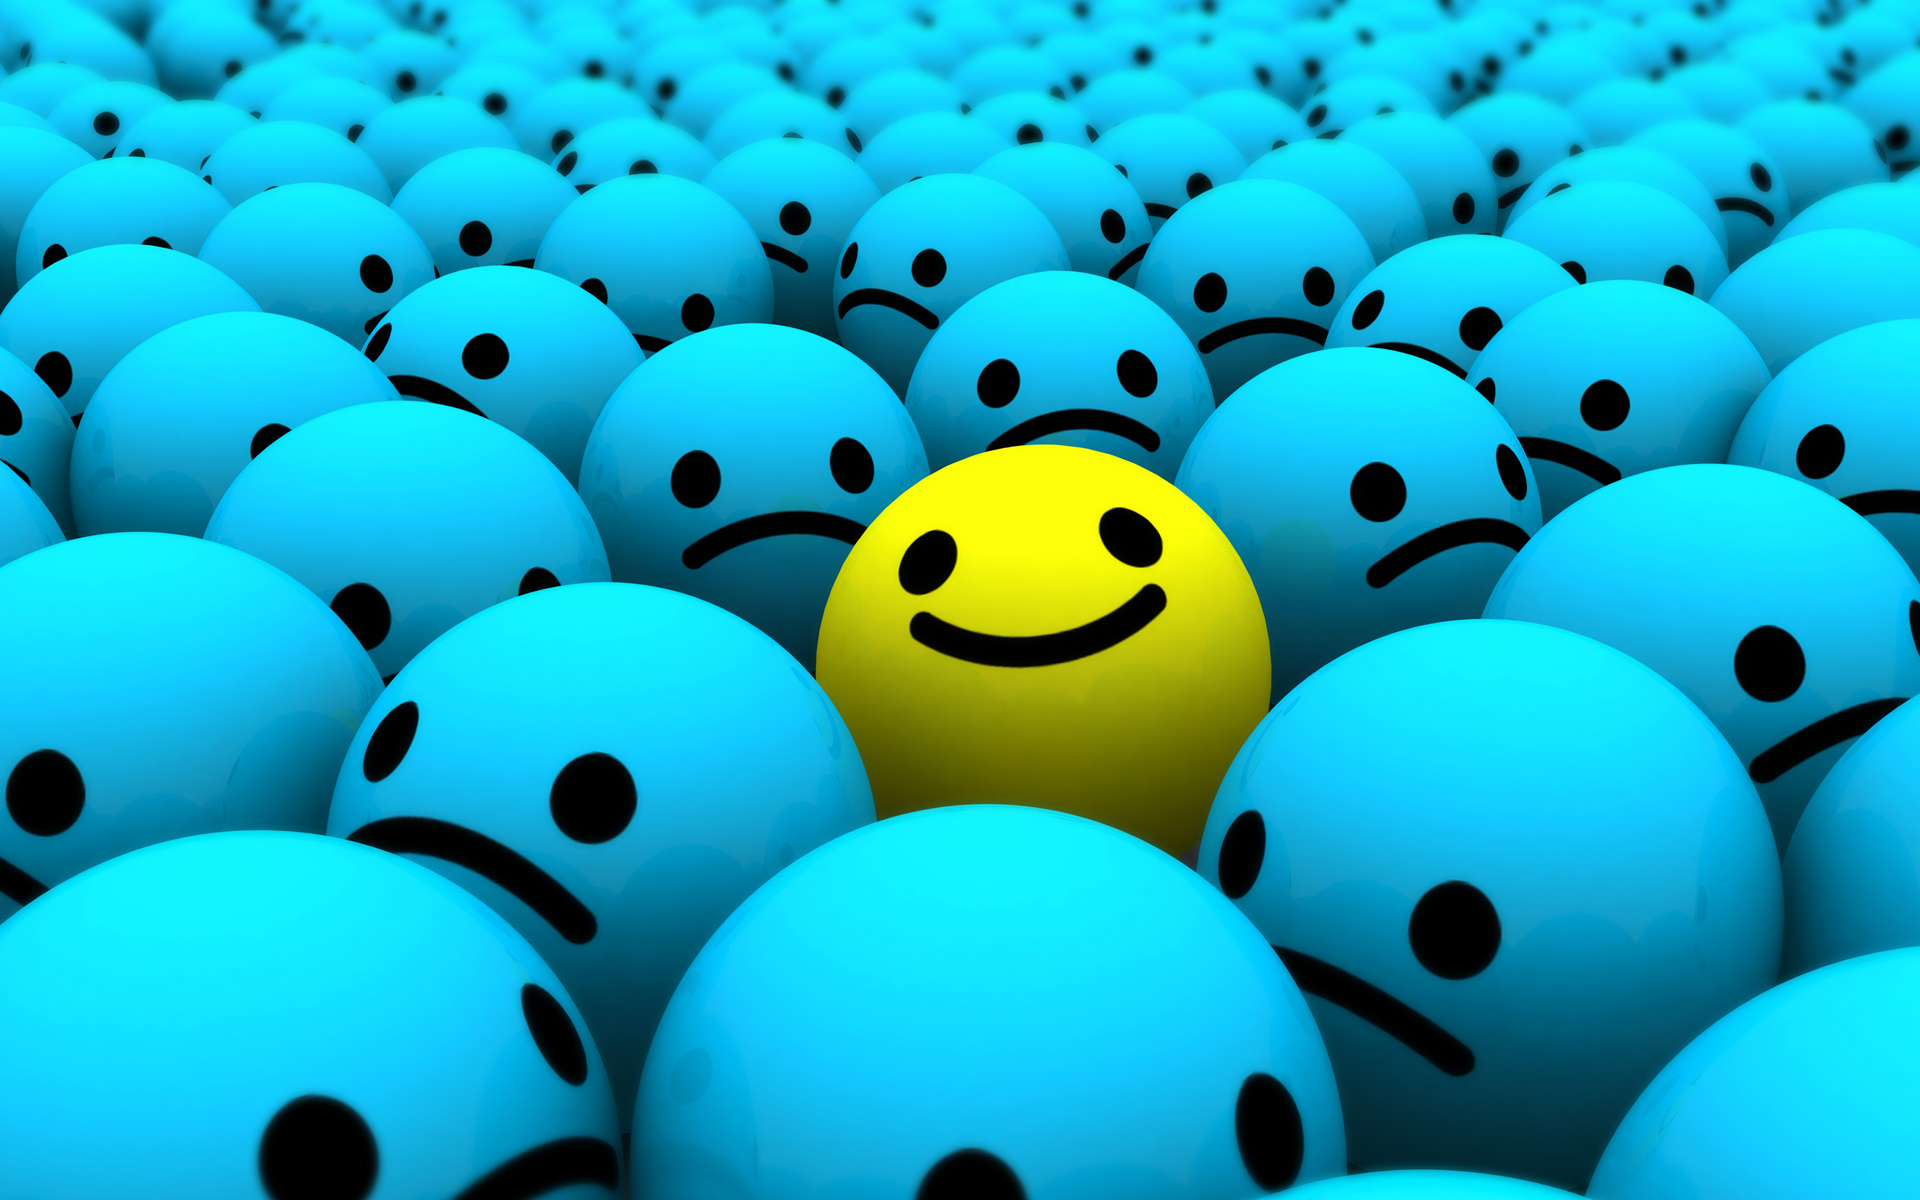 smiley 3d wallpaper Wallpaper